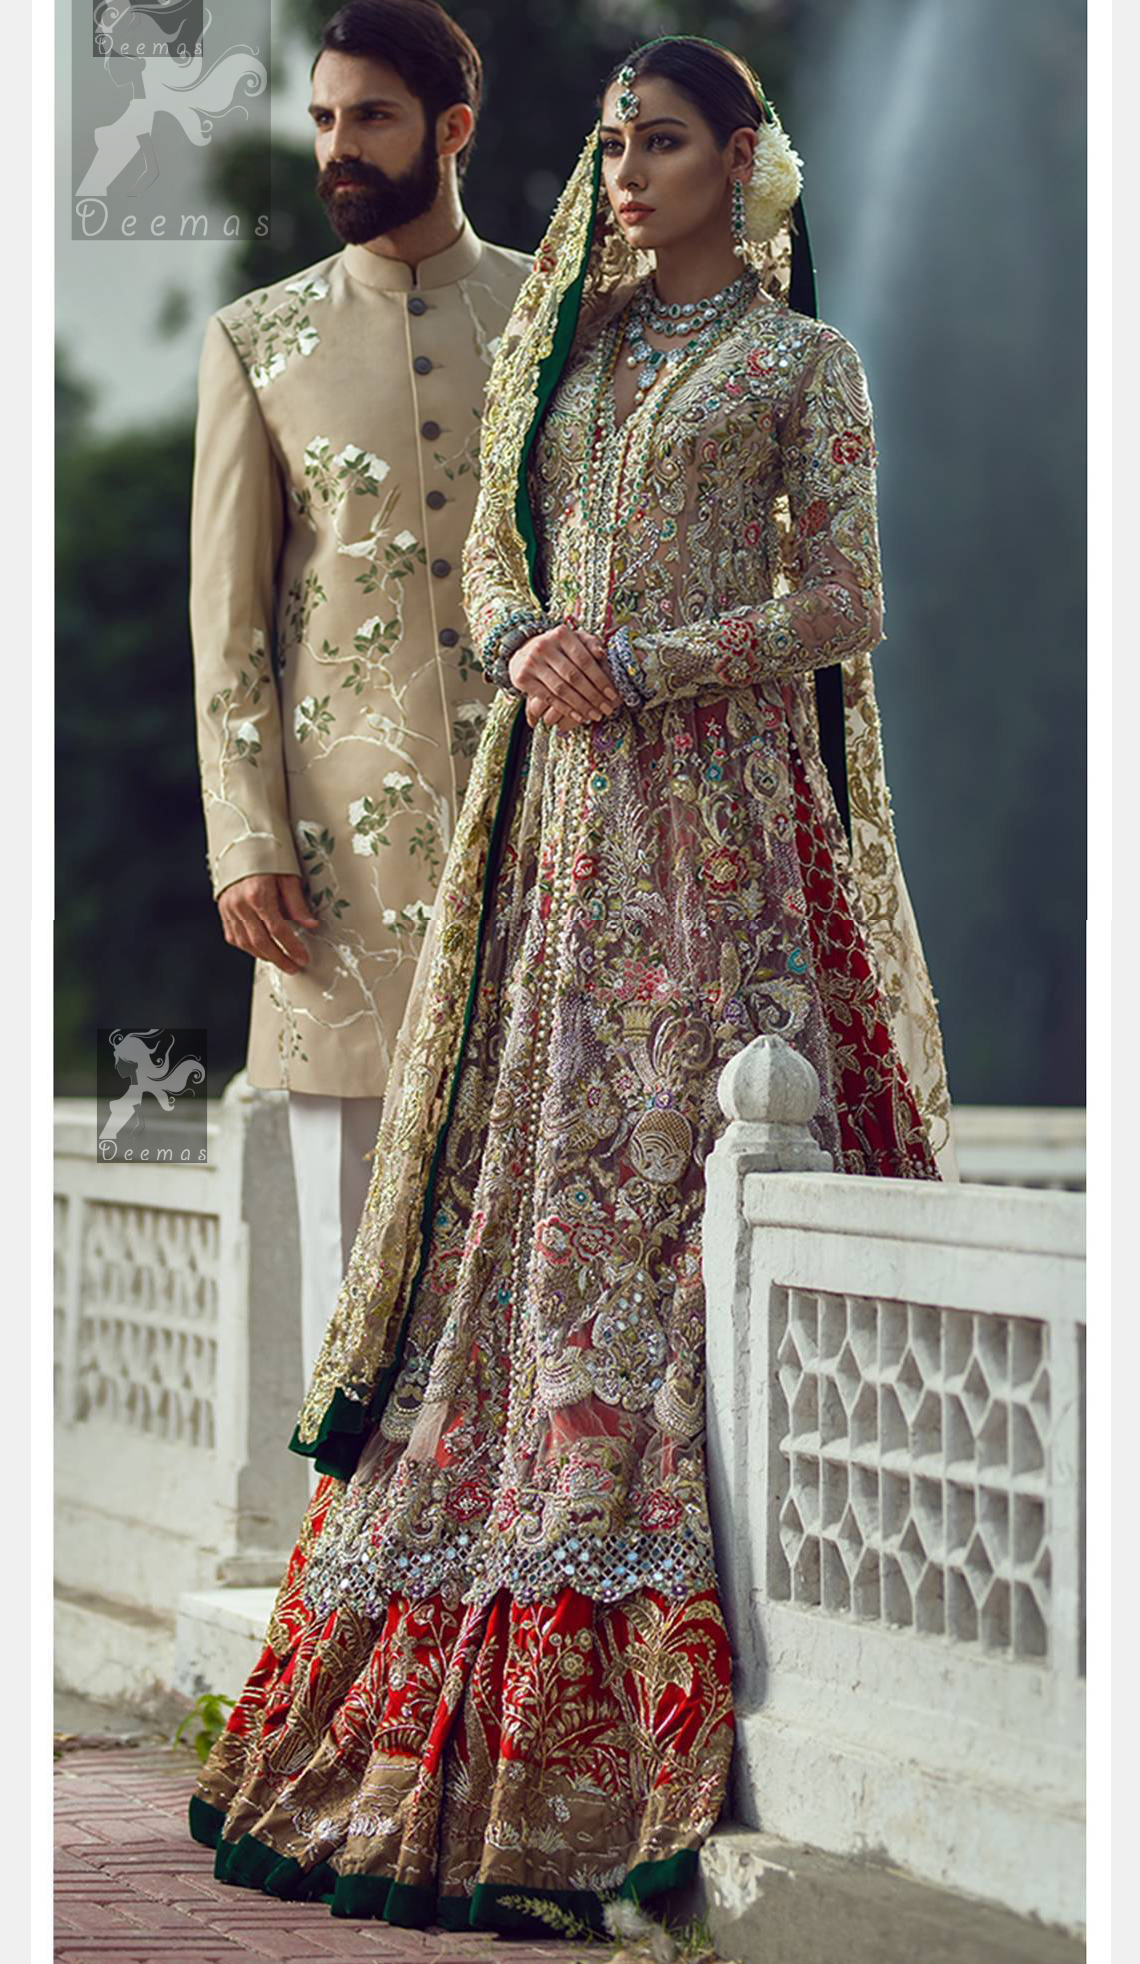 Light fawn pure crinkle chiffon front slits gown adorned with beautiful colorful embellishment. Red lehengha adorned with embellishment all over it. Light pistachio dupatta having embellished border on sides and motif spray all over it and finished with piping.